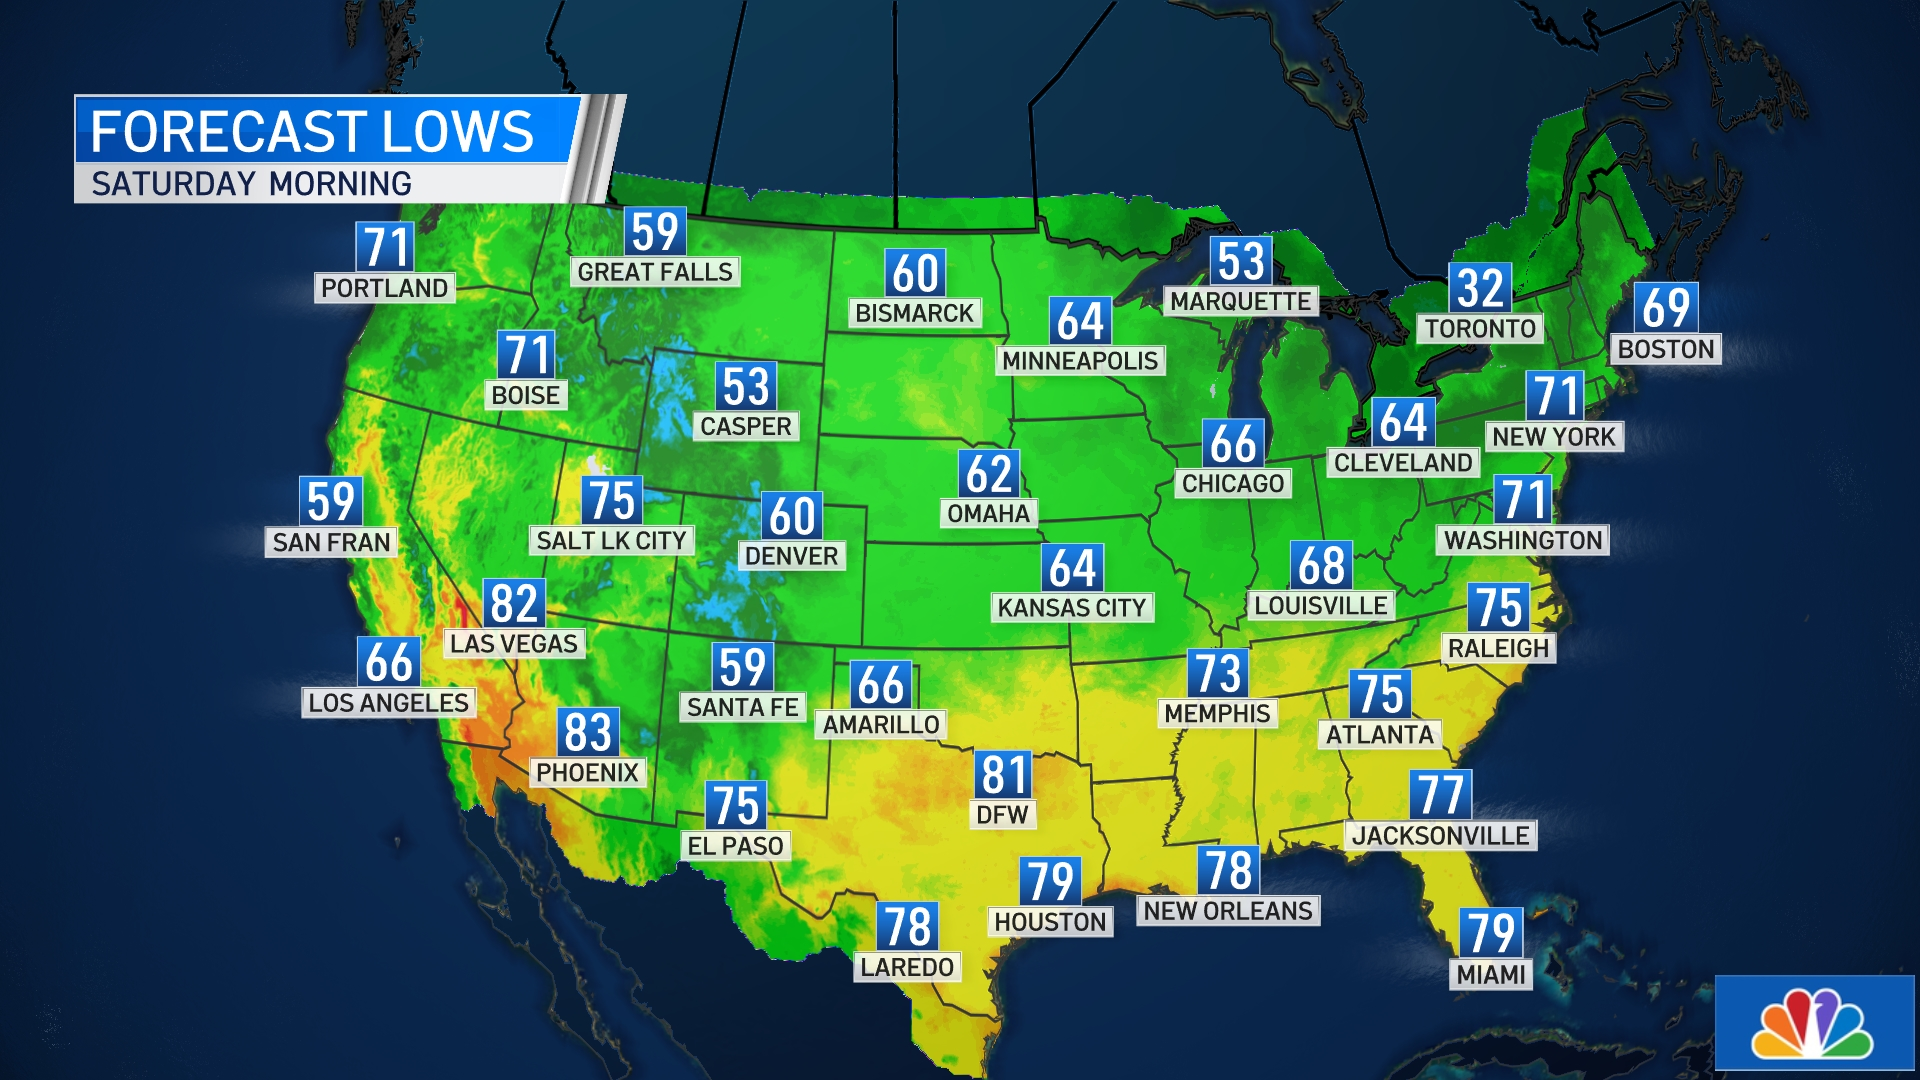 NATIONAL FORECAST LOWS